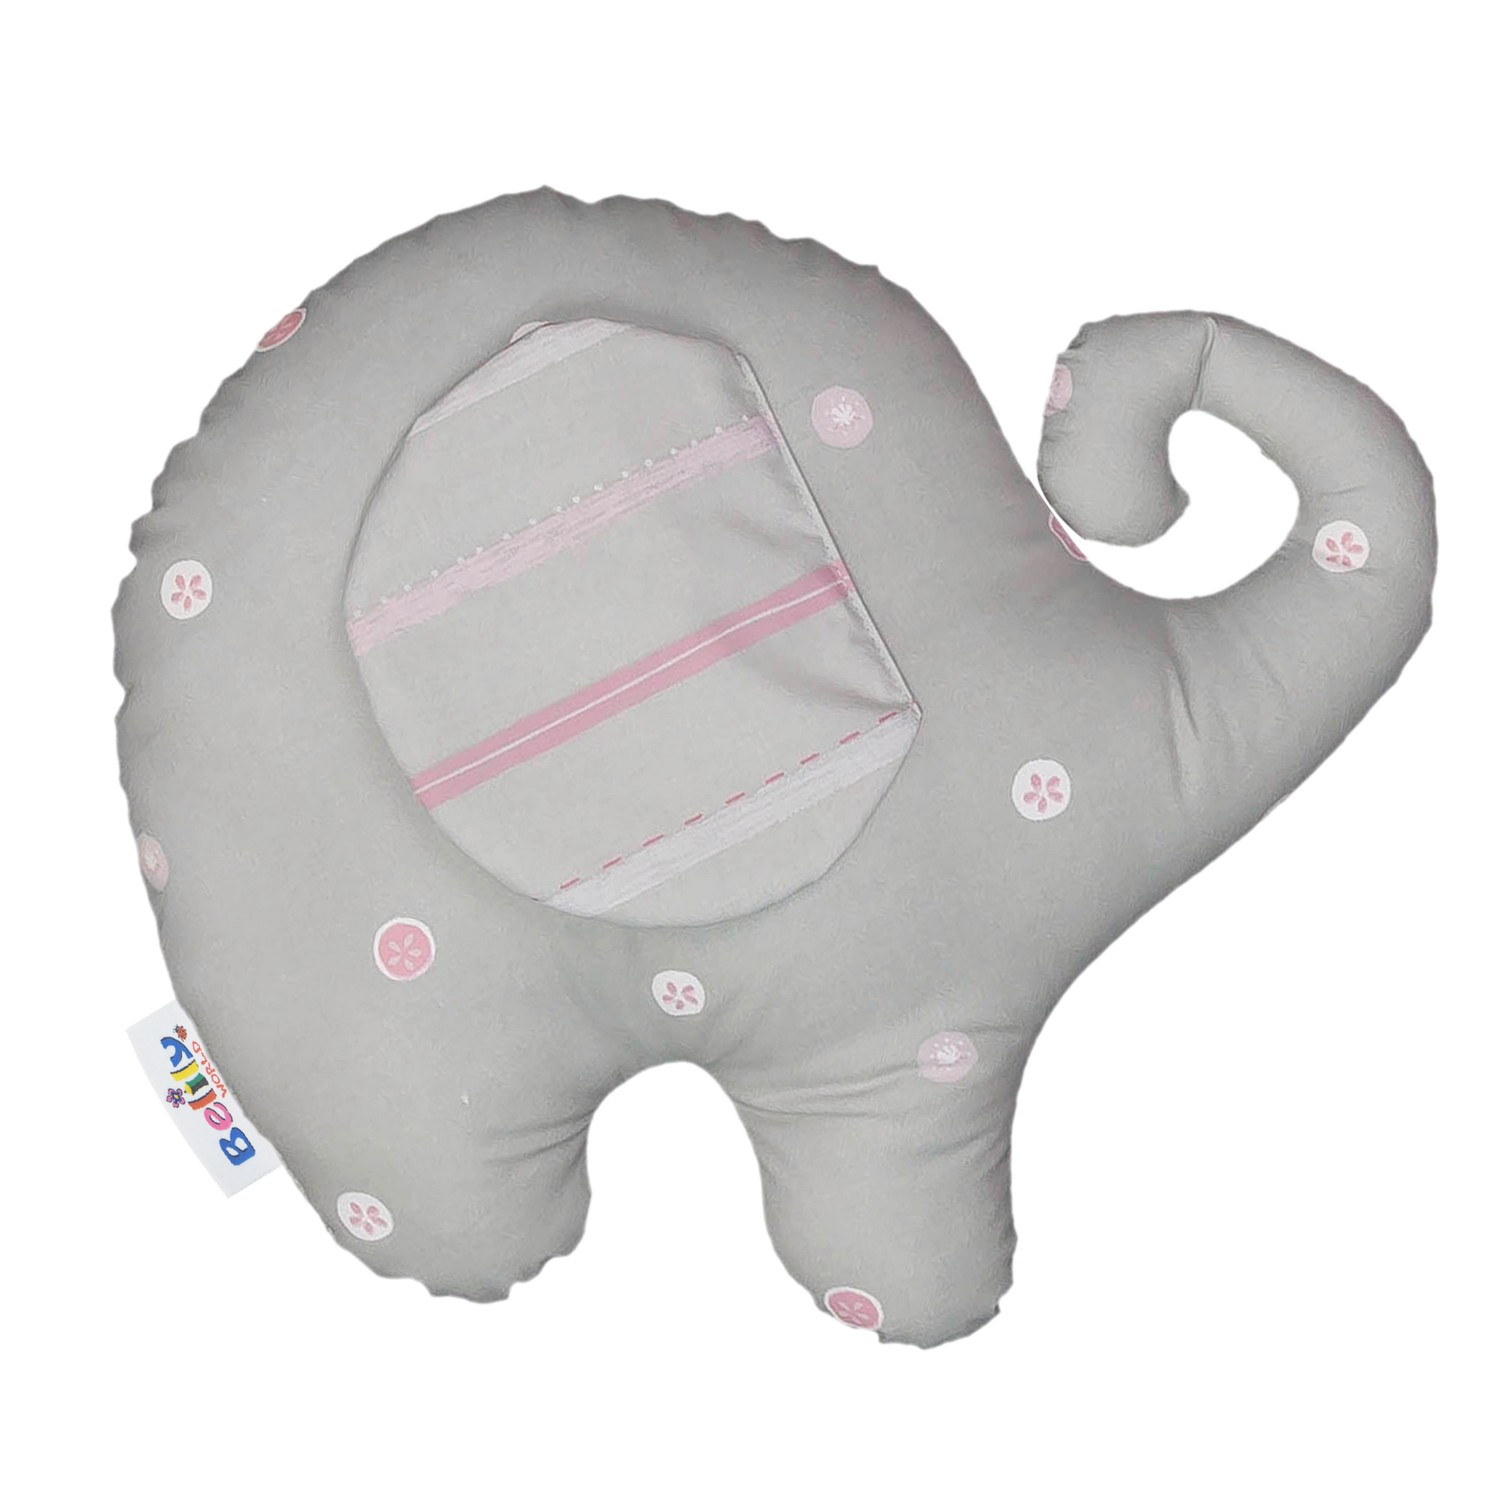 Cuddly Elephant Pillow Label For Diaper Bags Nursing